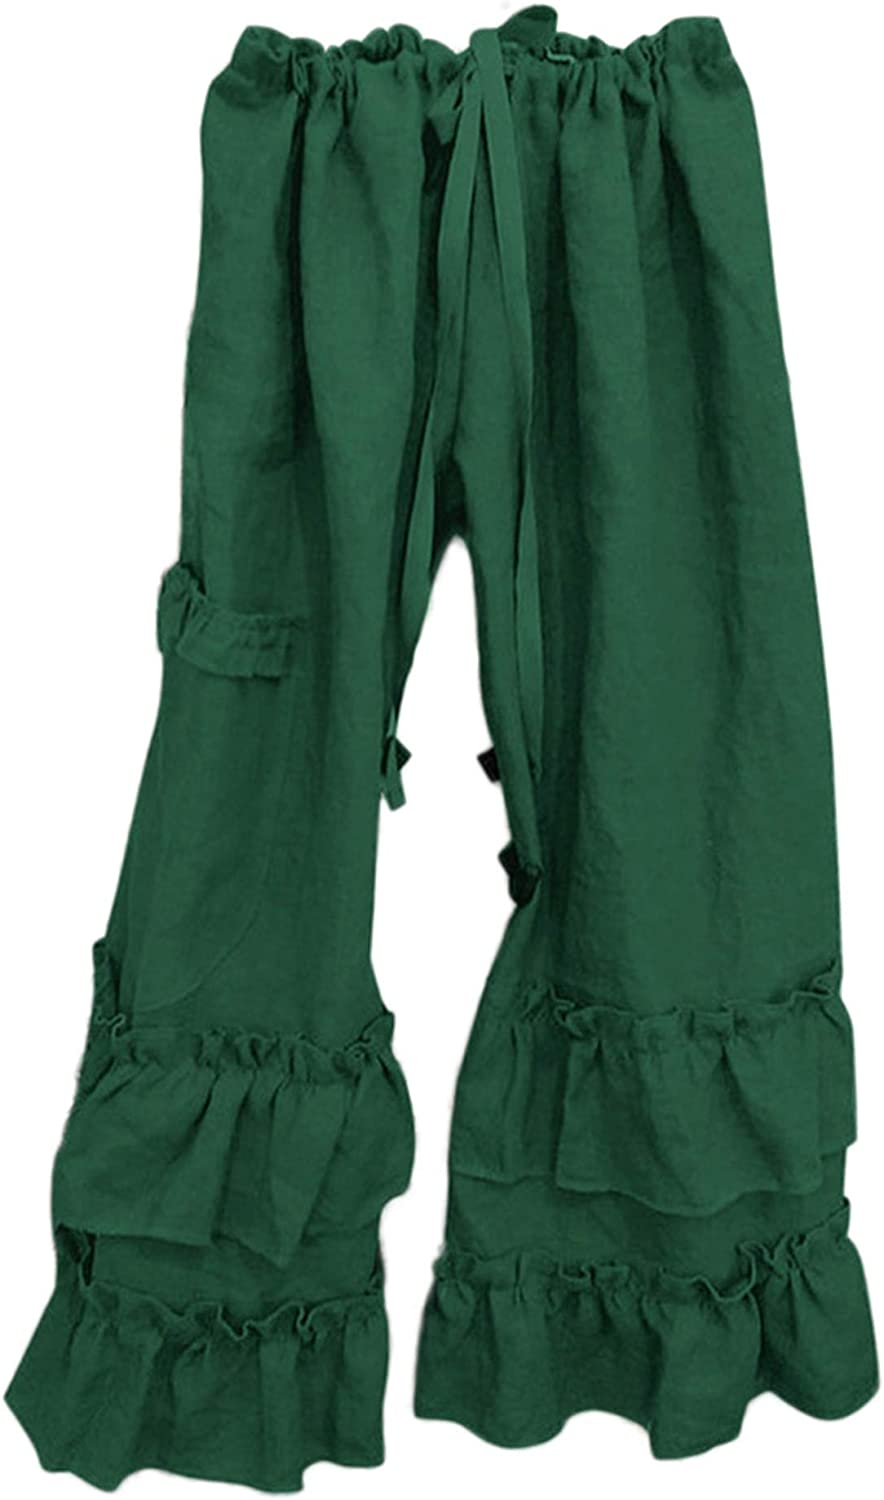 Andongnywell Women's Linen Wide Leg Pants Elastic Waist Casual with Pockets Solid Color Ruffle Hem Trousers